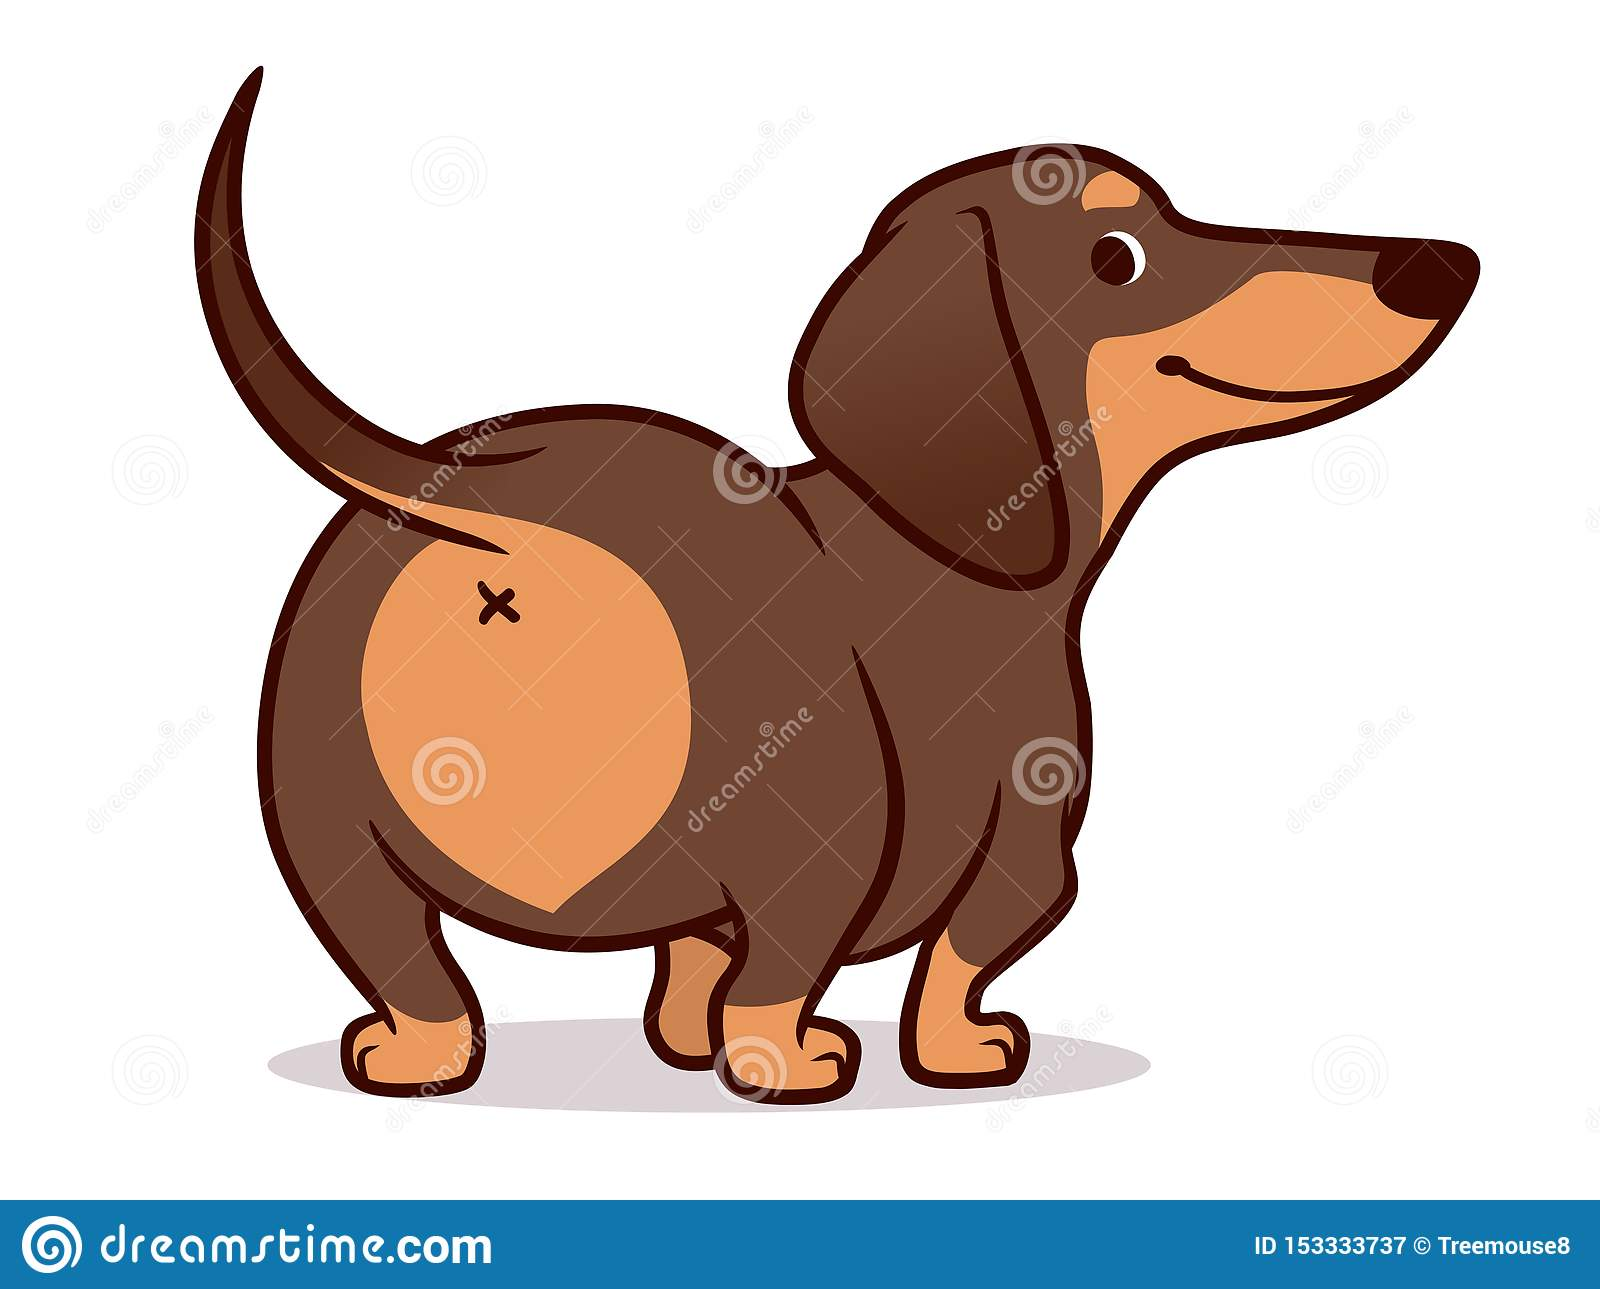 Cute Wiener Sausage Dog Cartoon Illustration Isolated On